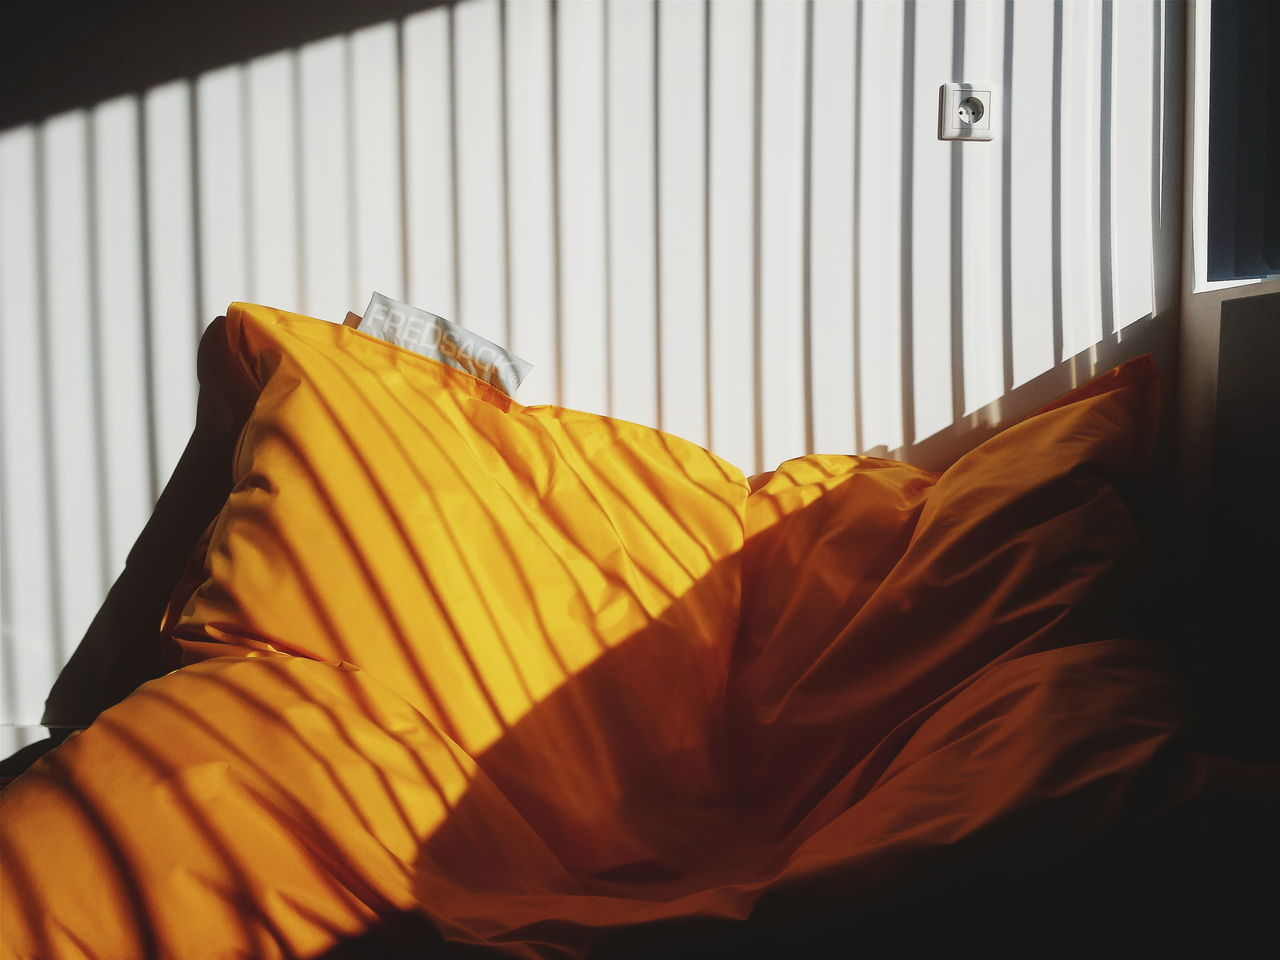 clothing, textile, indoors, window, fabric, no people, home interior, bed, curtain, yellow, day, pillow, hanging, sheet, bedroom, close-up, coathanger